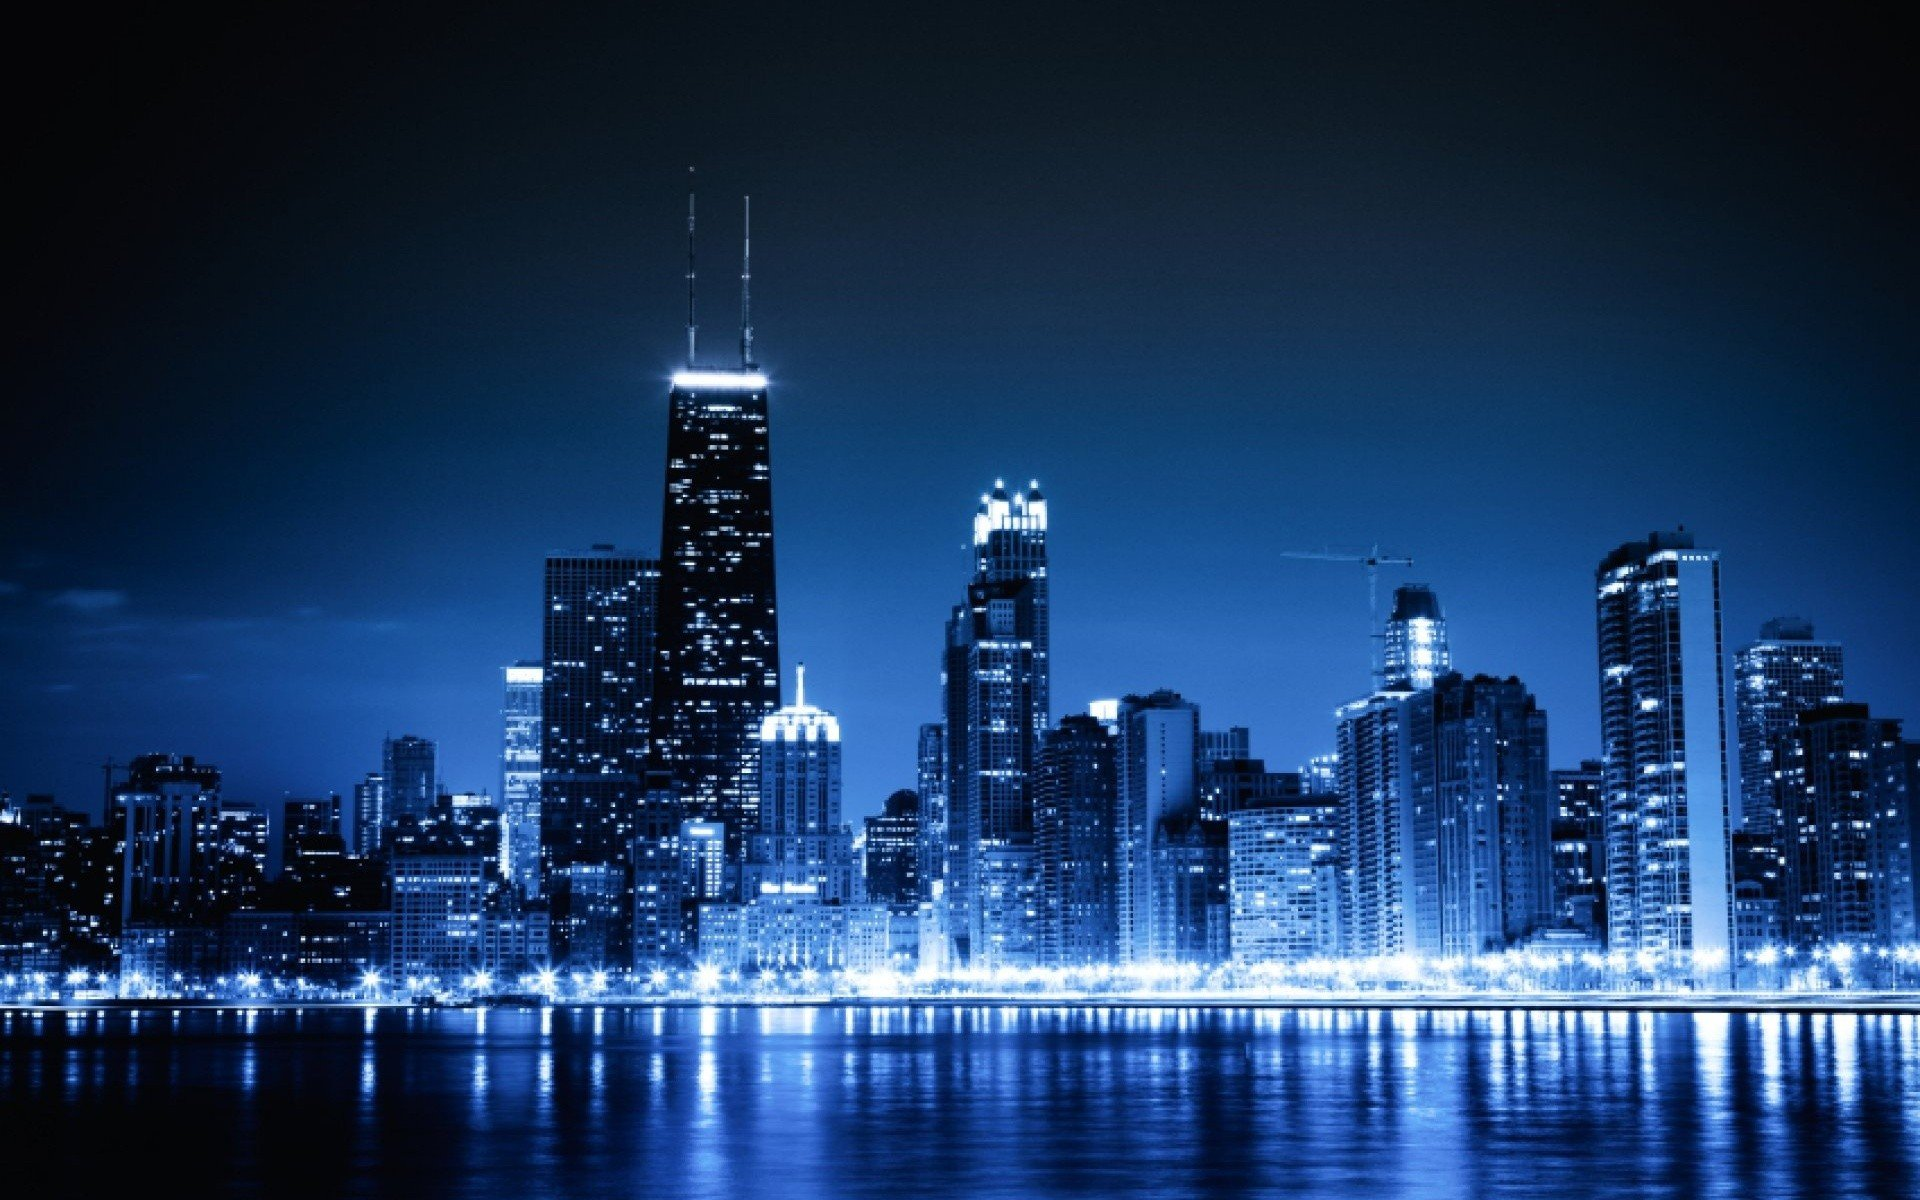 cityscapes Chicago night lights urban skyscrapers wallpaper background 1920x1200